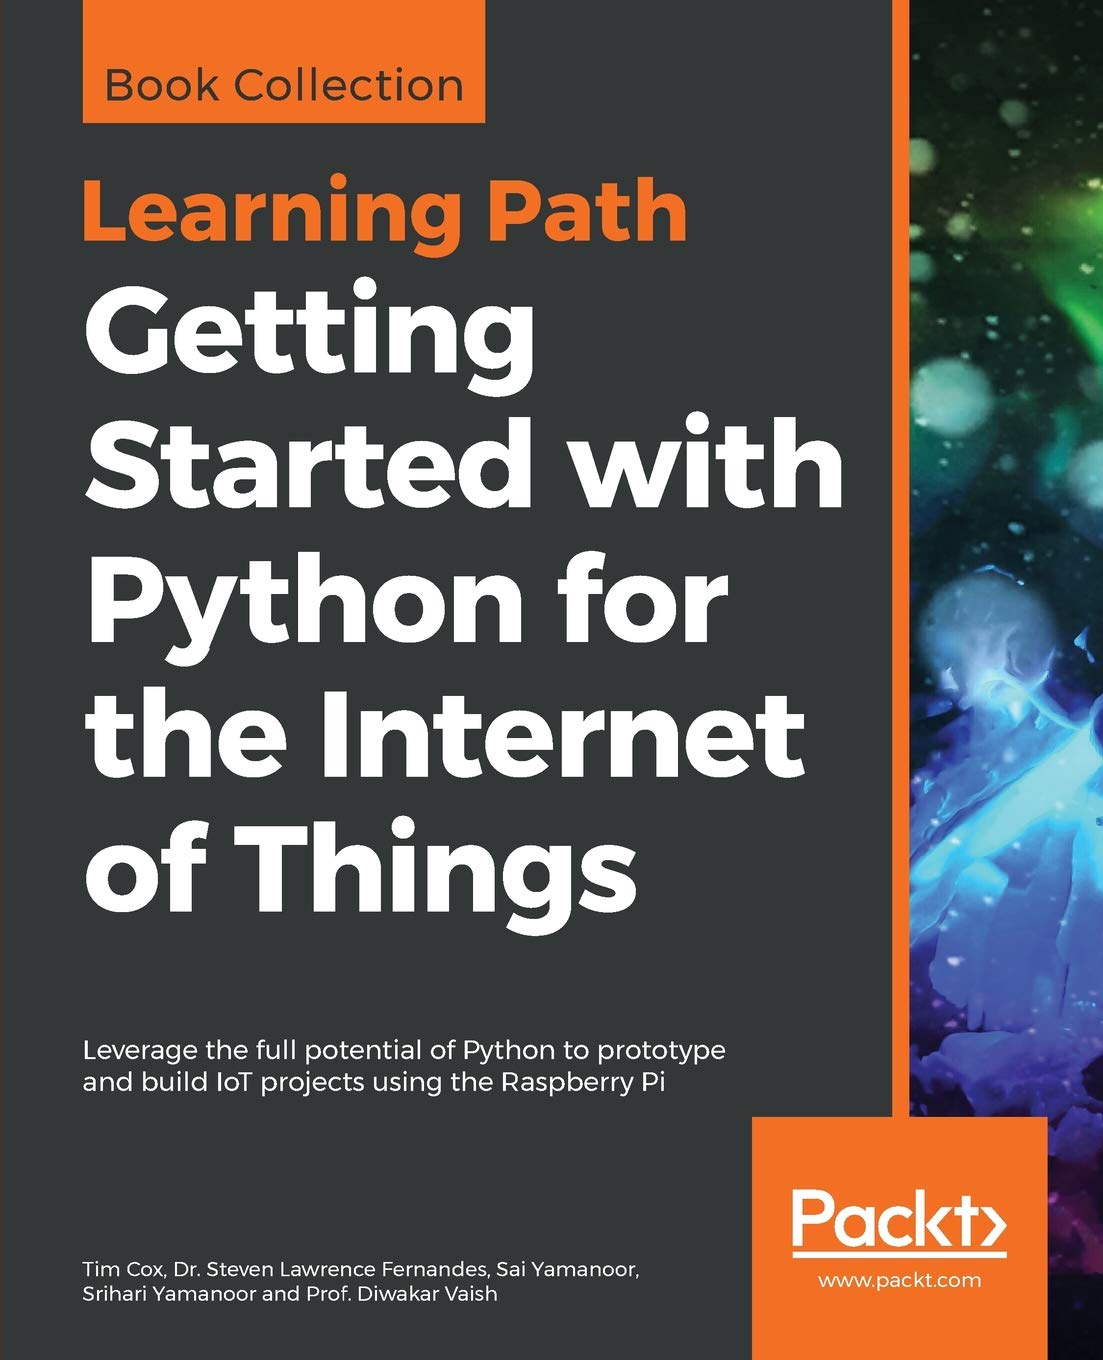 Getting Started with Python for the Internet of Things: Leverage the full potential of Python to prototype and build IoT projects using the Raspberry Pi